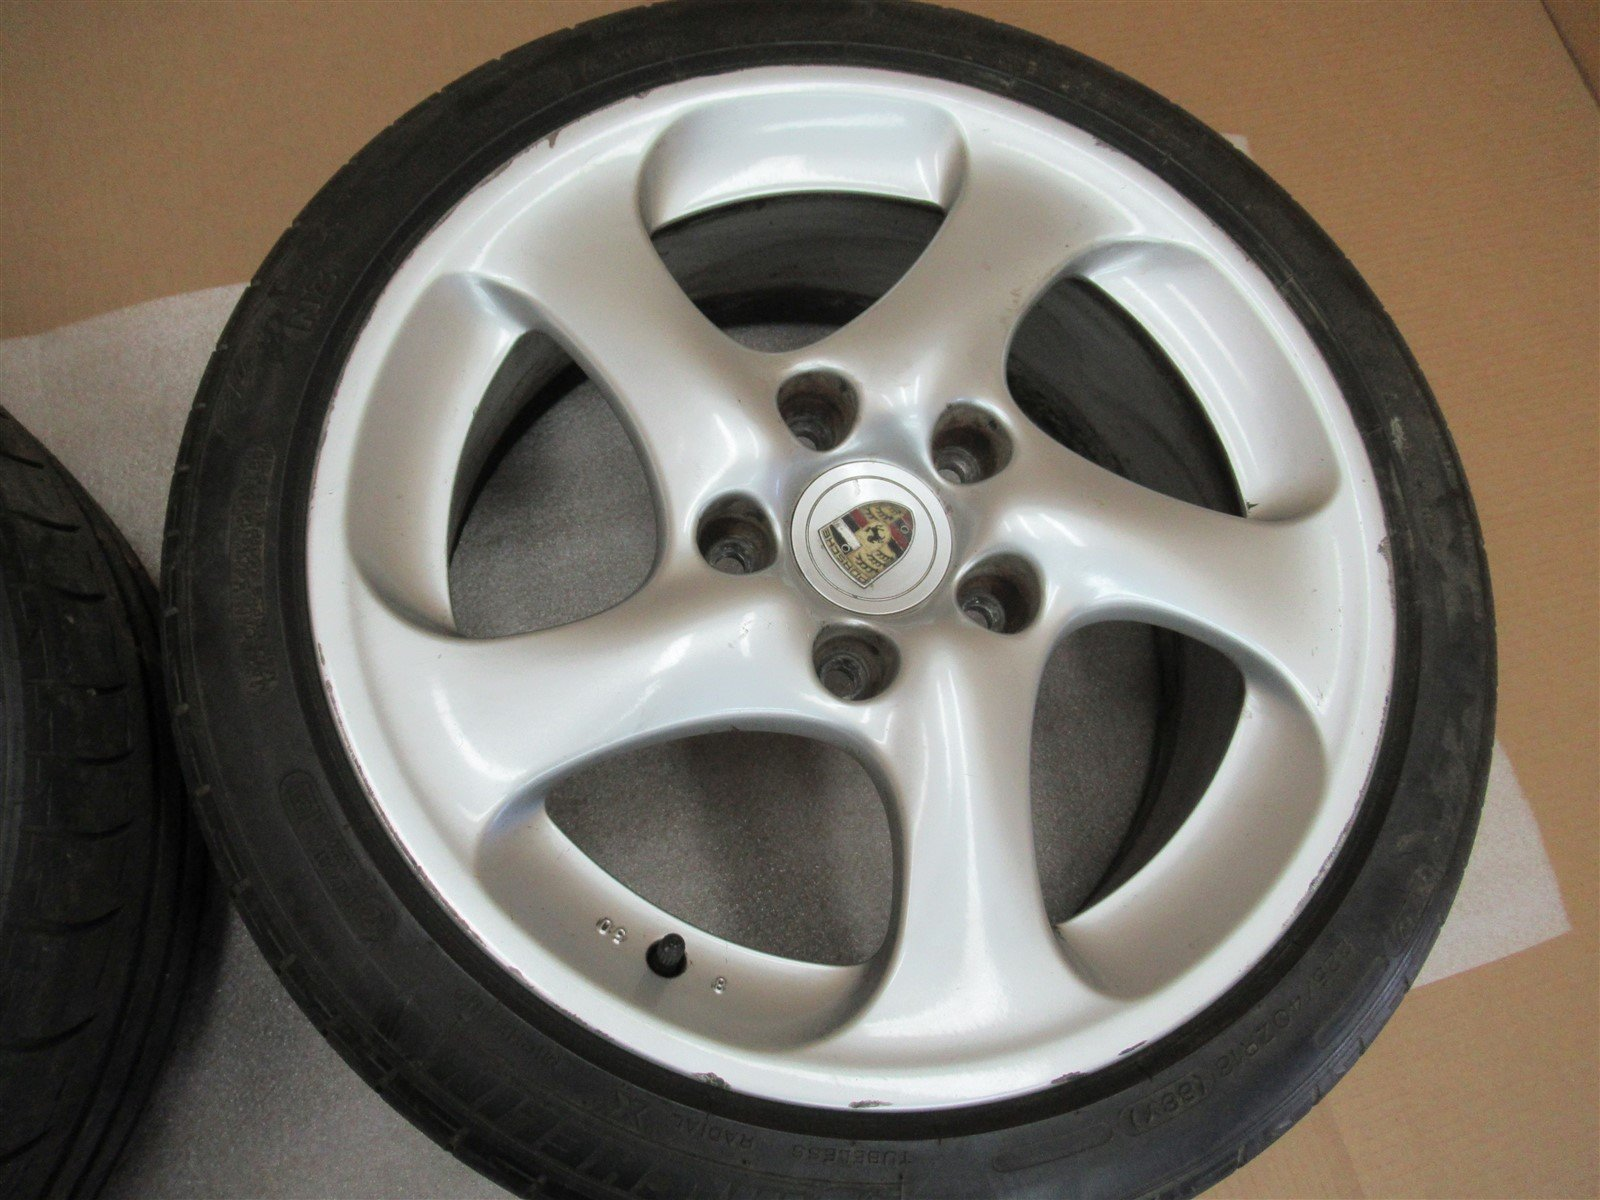 04 Carrera 4S 911 AWD Porsche 996 FRONT RIMS WHEELS 8Jx18ET50 99636213601 65,764